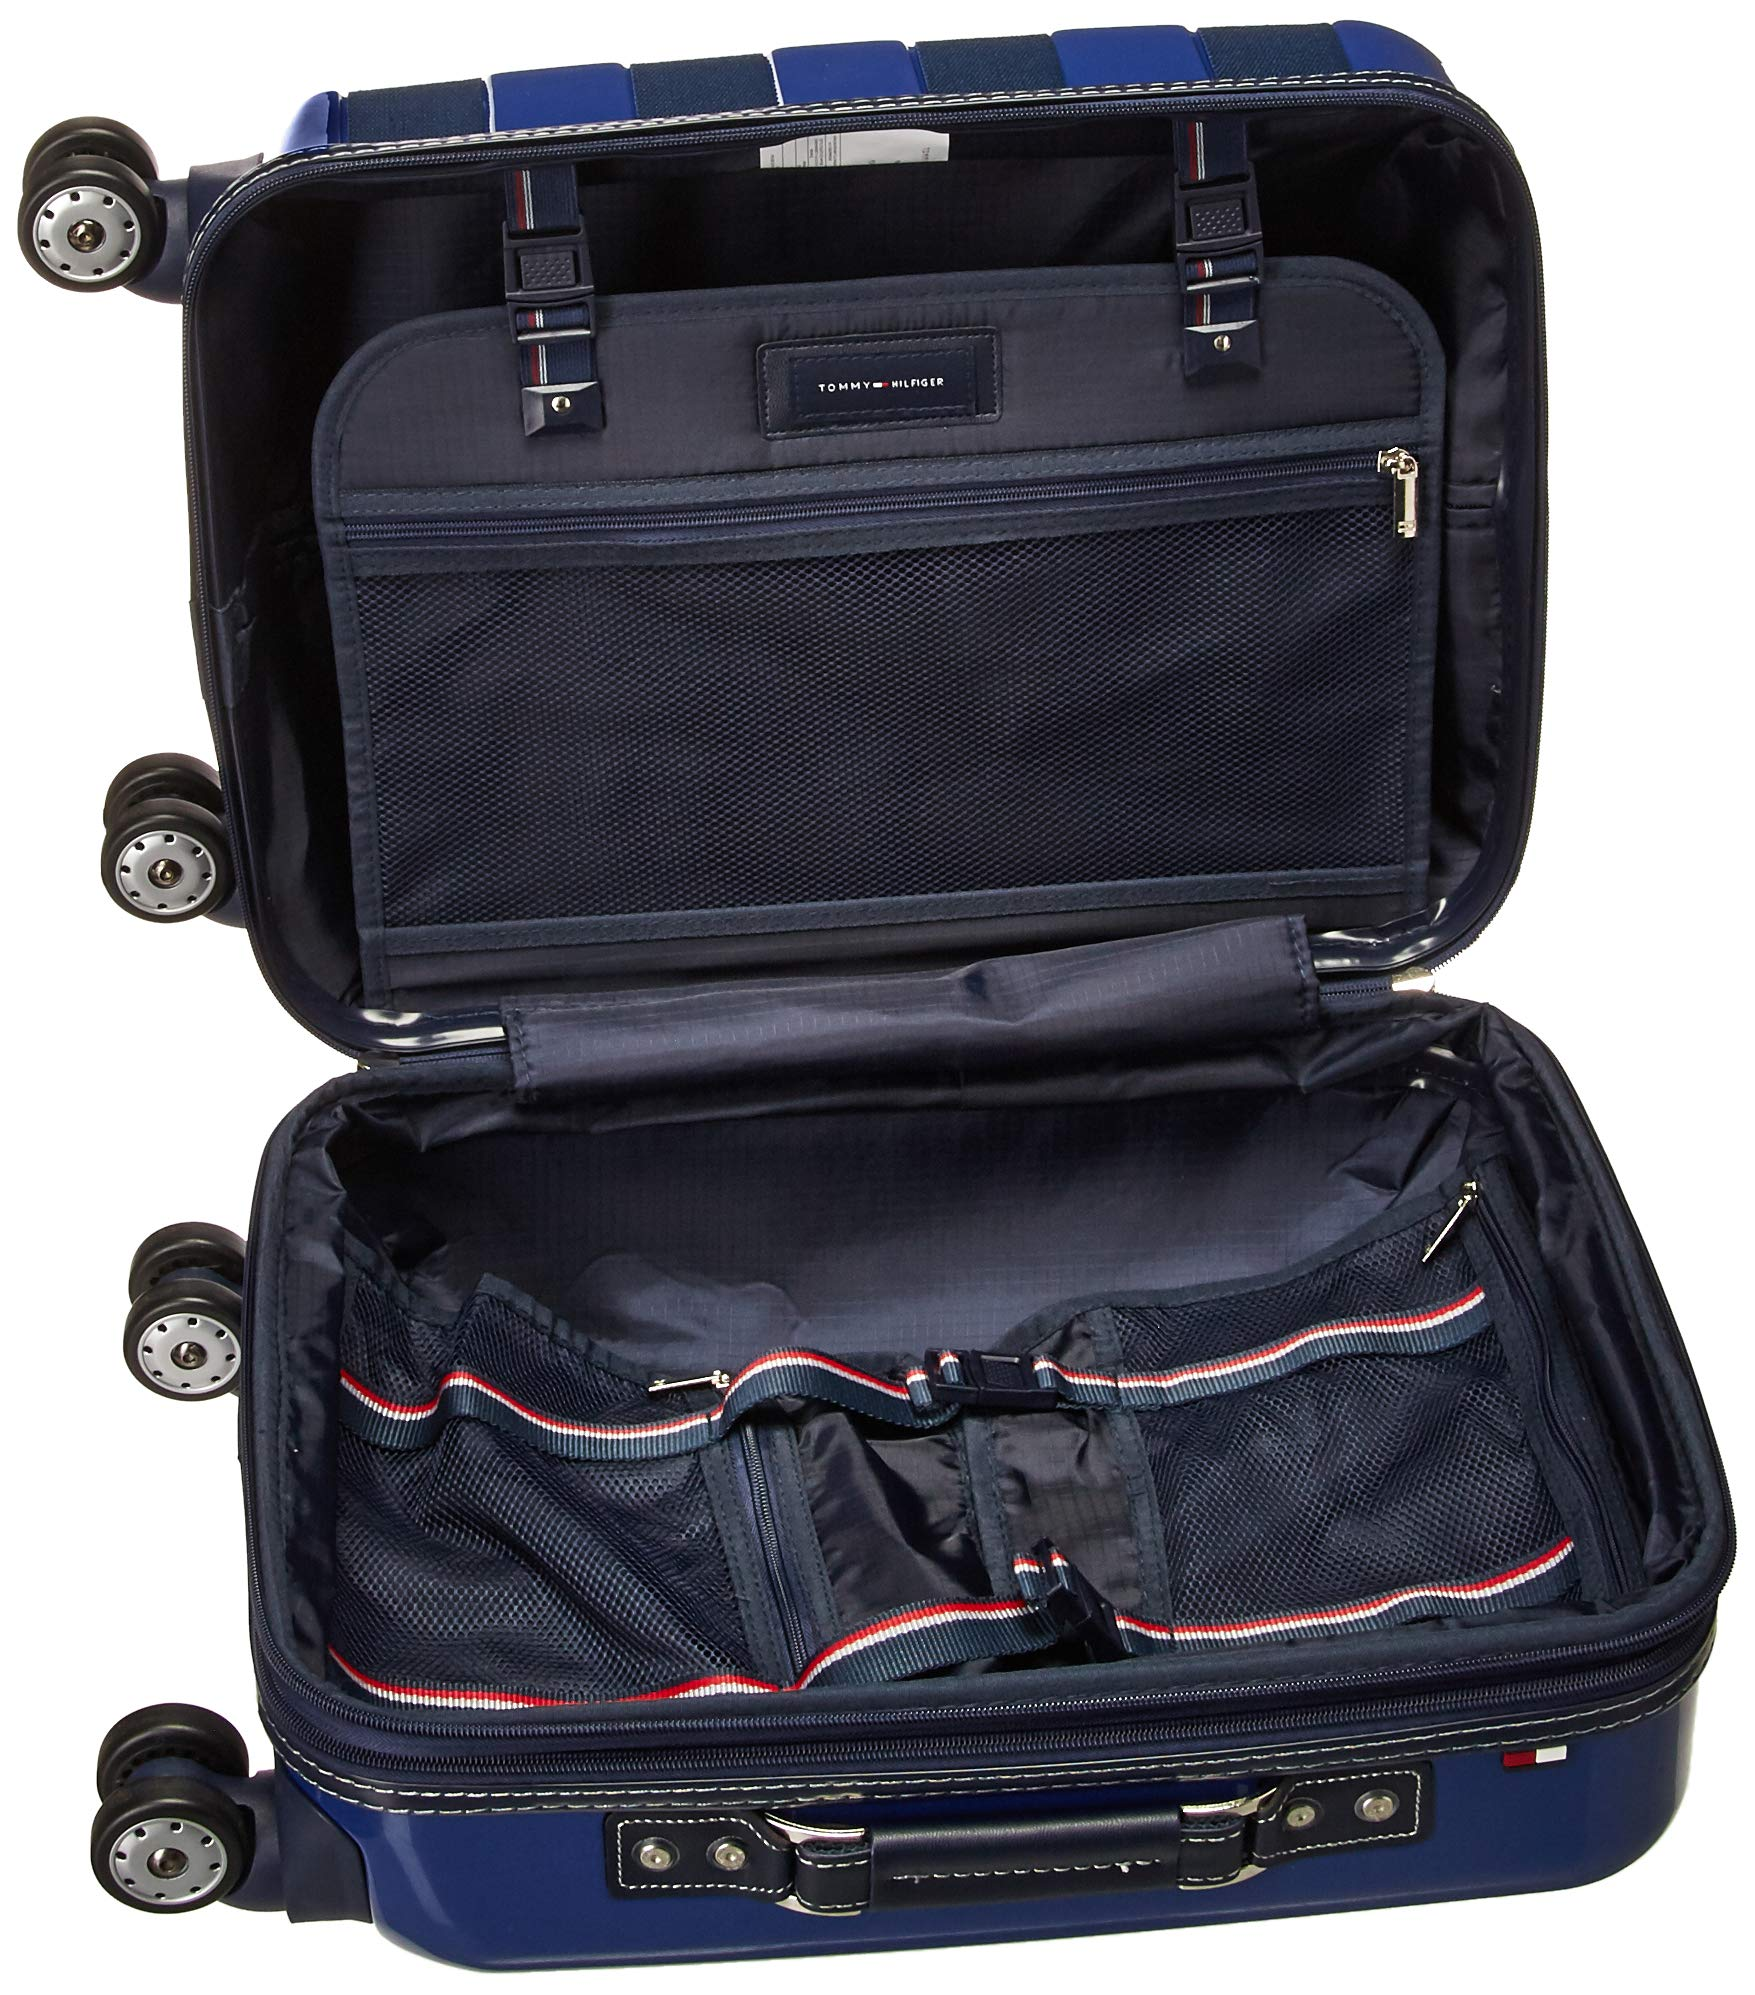 9eed18c629 Amazon.com: Tommy Hilfiger: Luggage